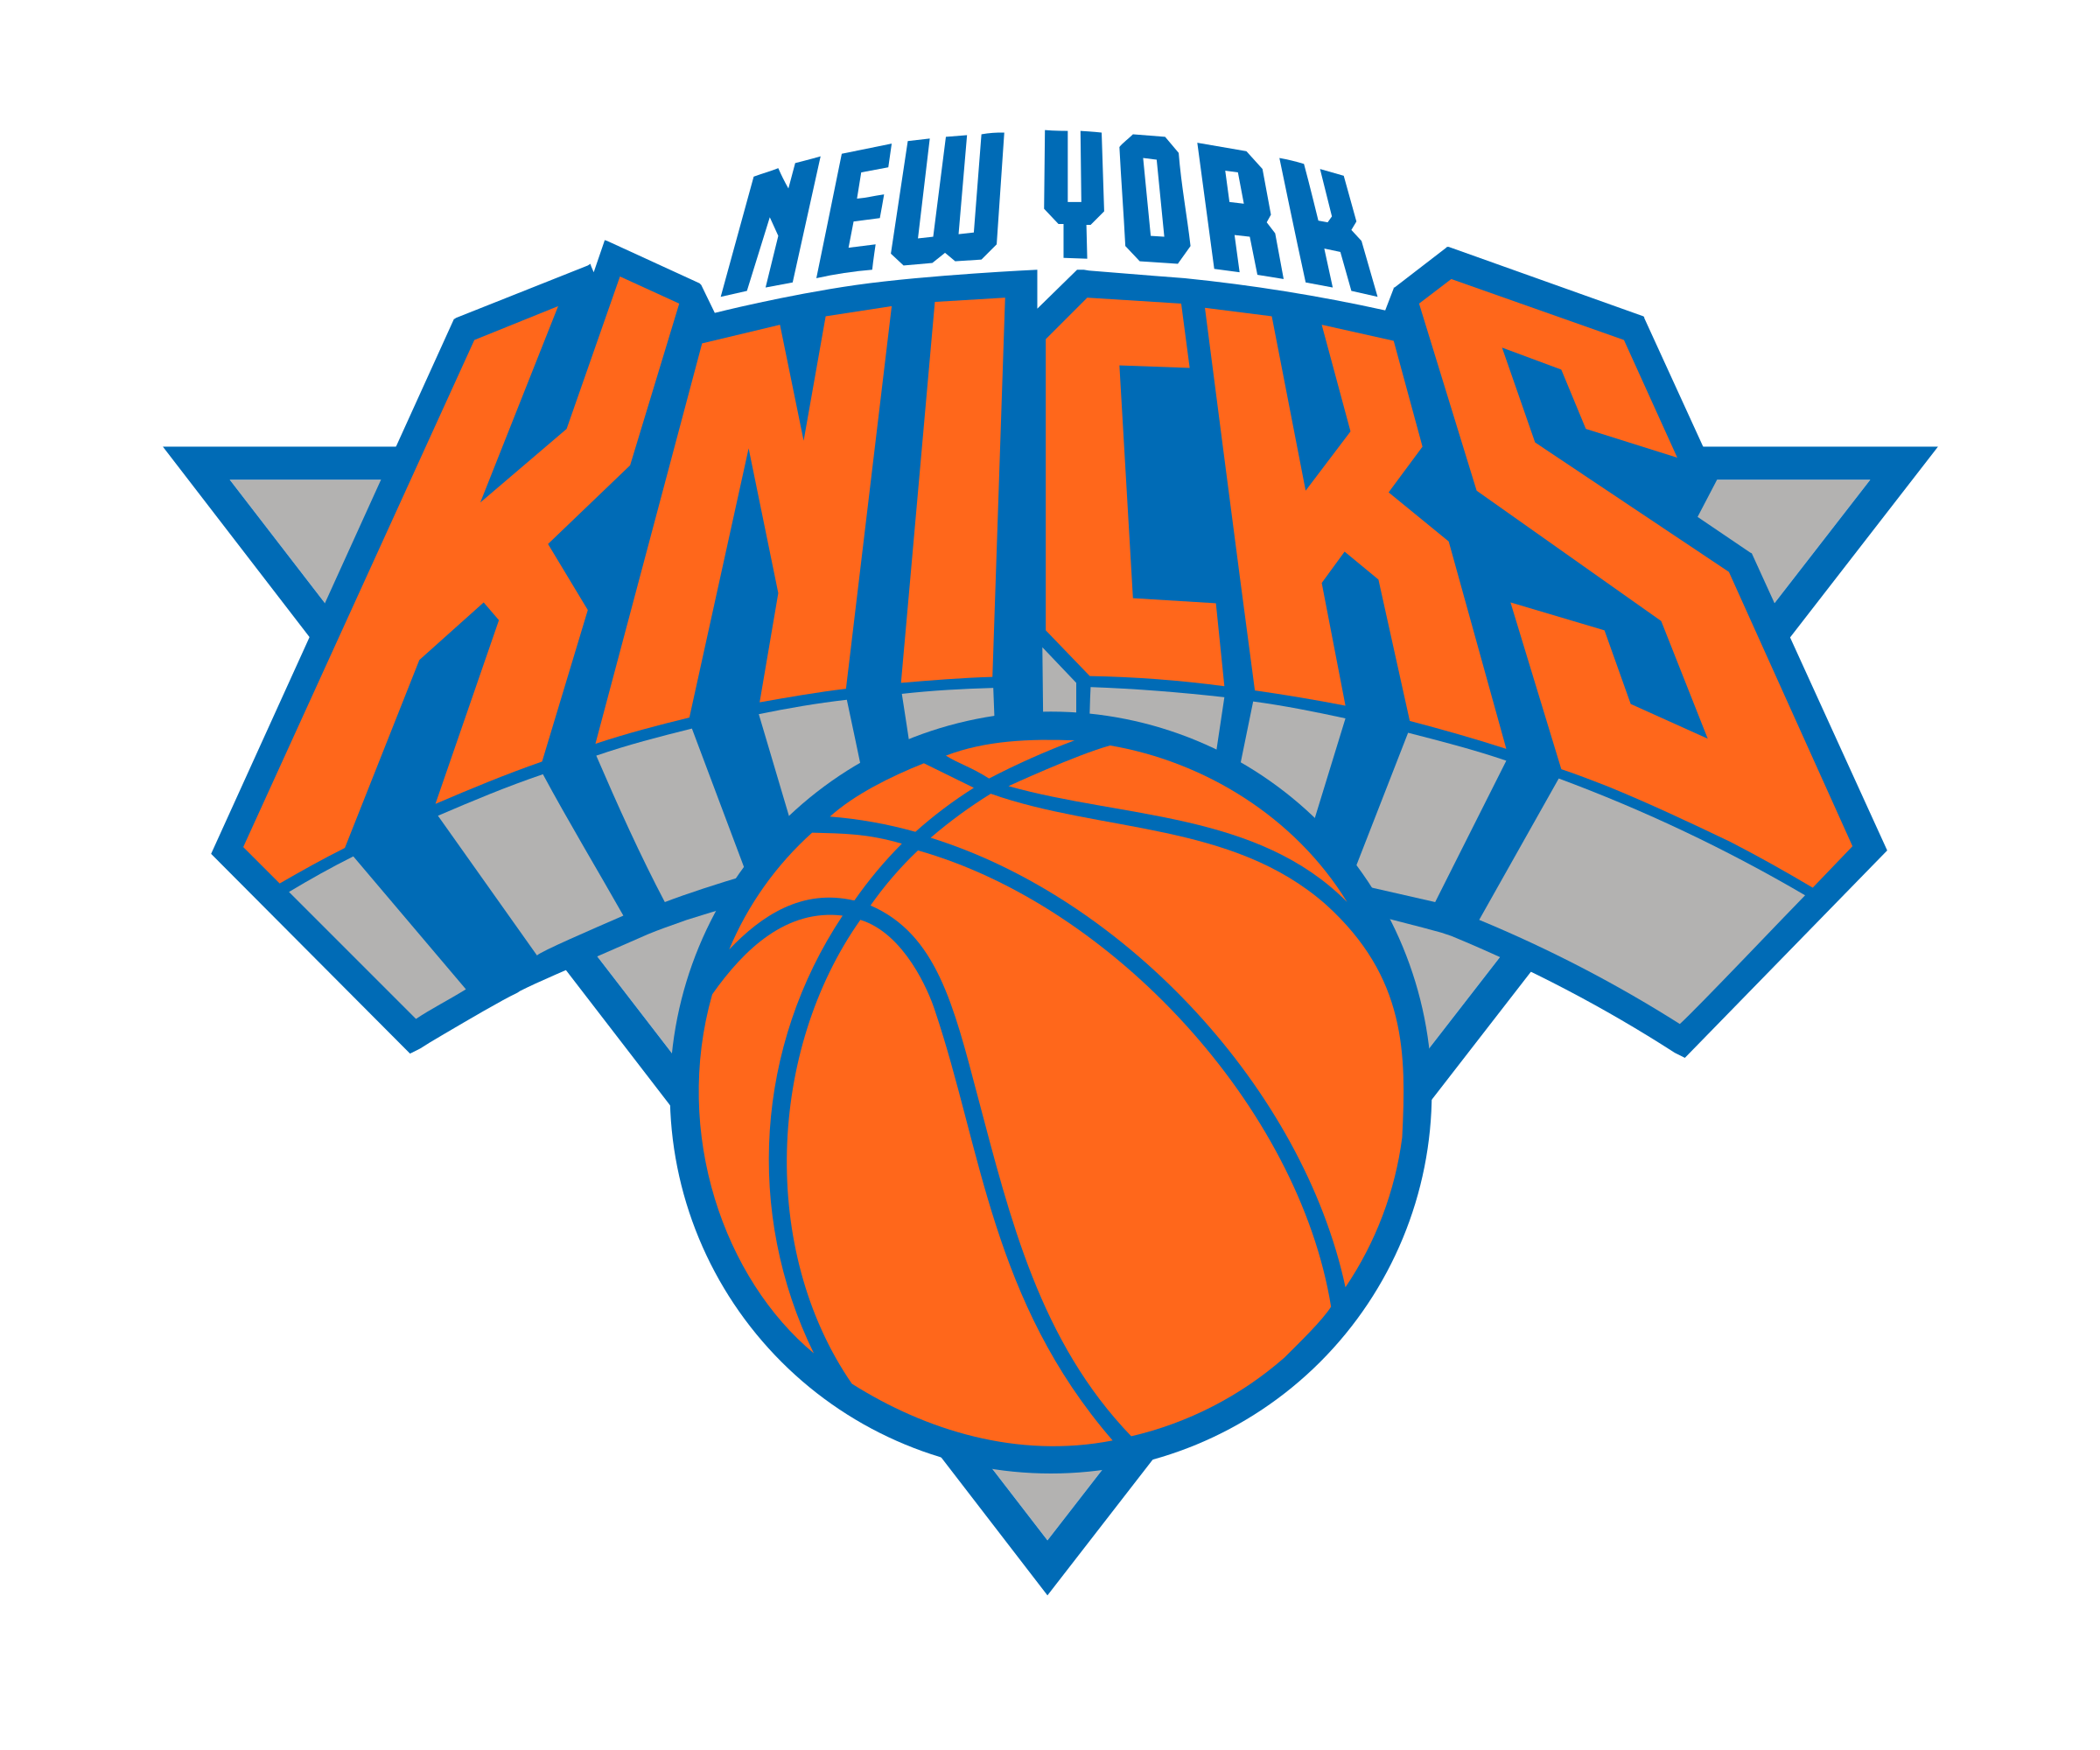 New York Knicks Logo PNG Transparent Amp SVG Vector